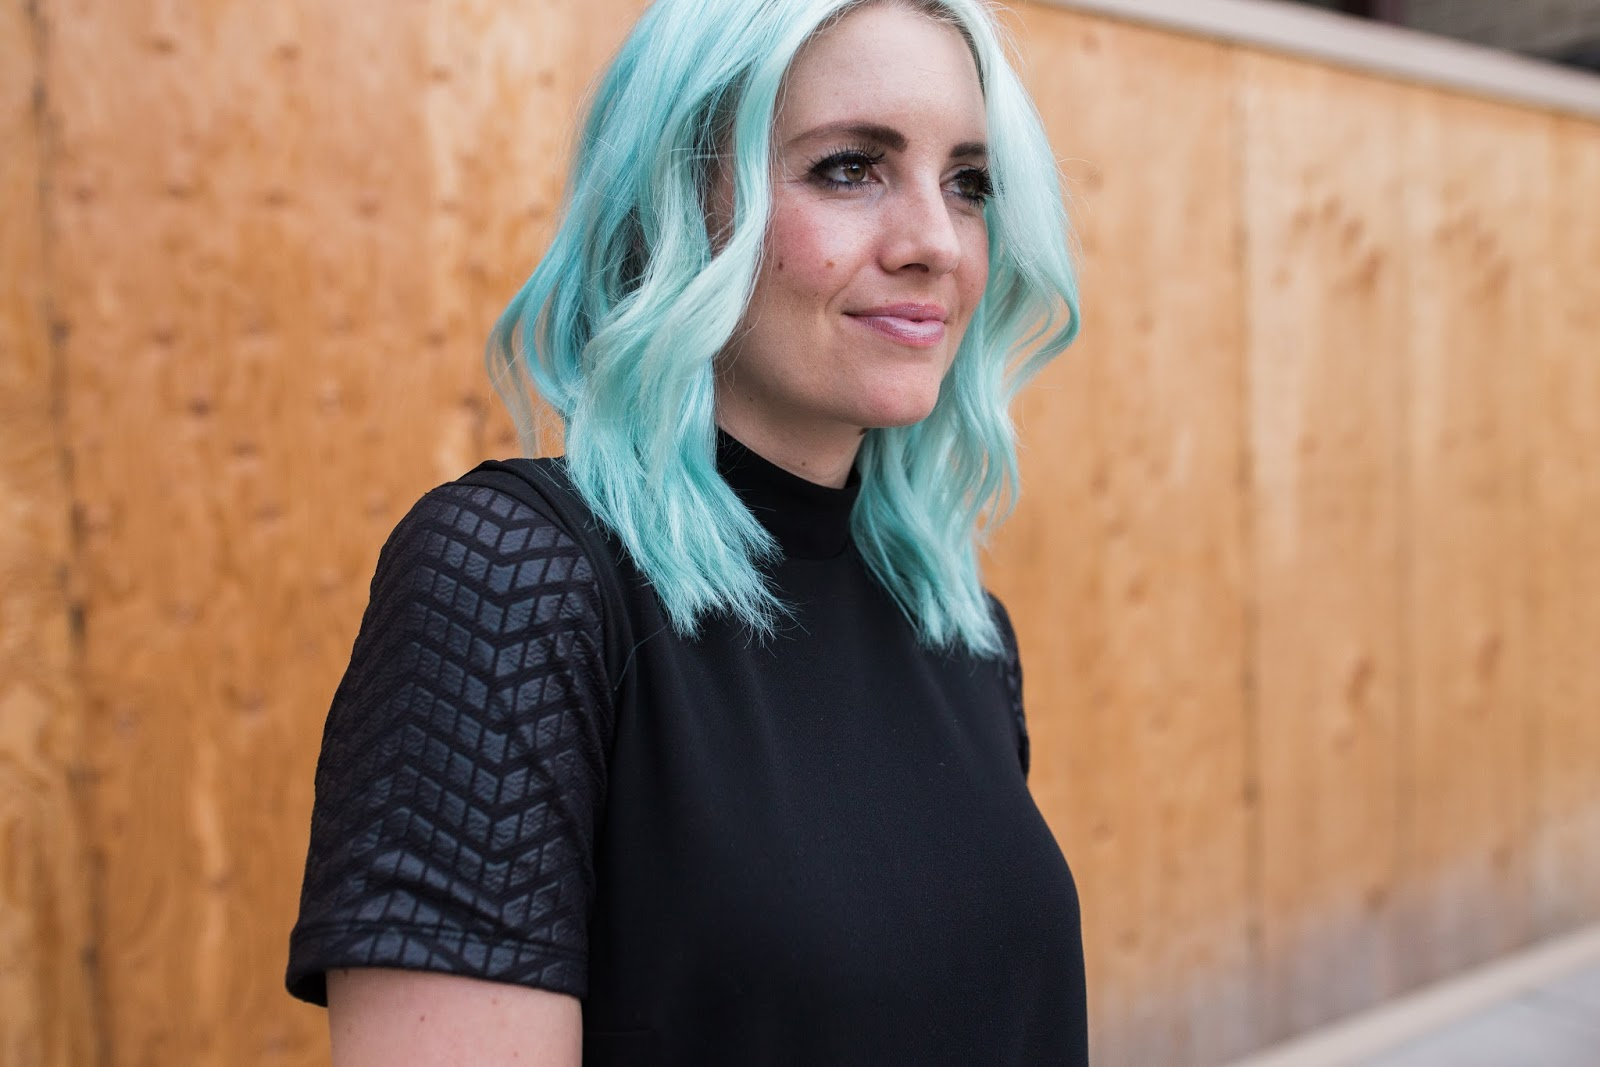 Blue Hair, BLETS, Modest Layering Shirts